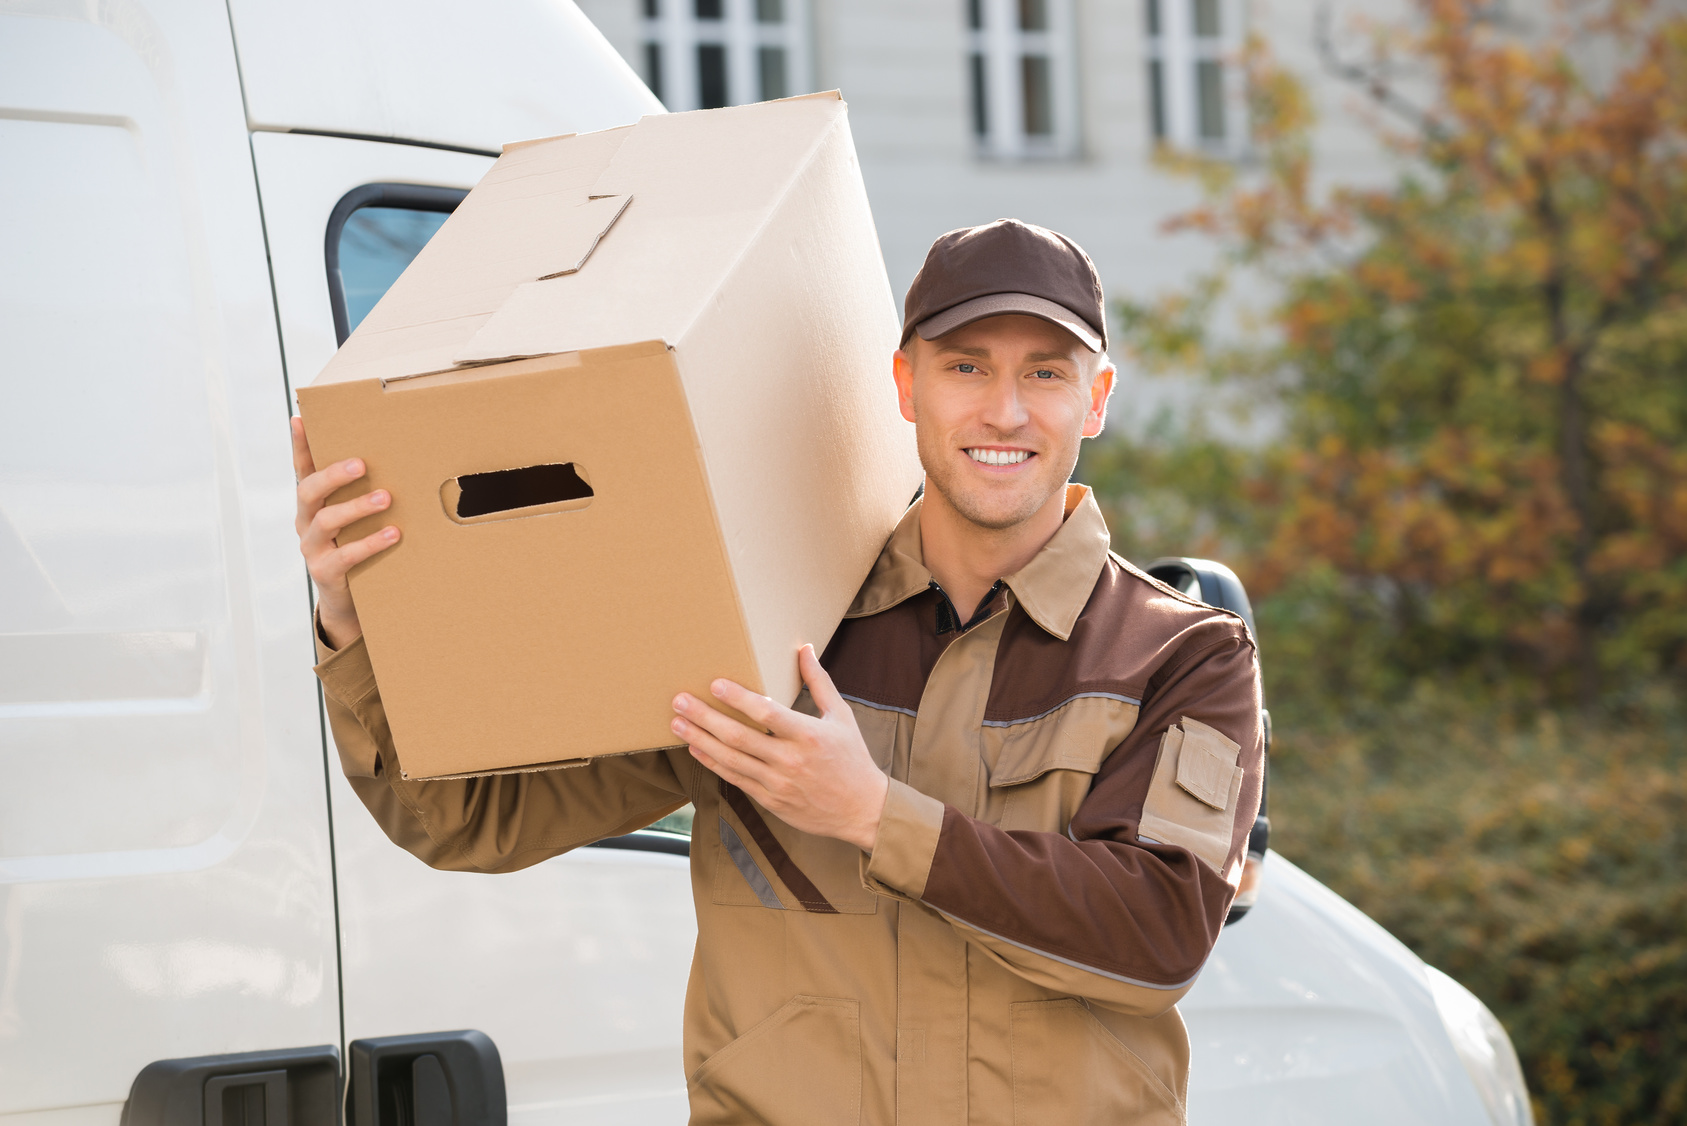 Portrait of young delivery man carrying cardboard box on shoulder with truck in background